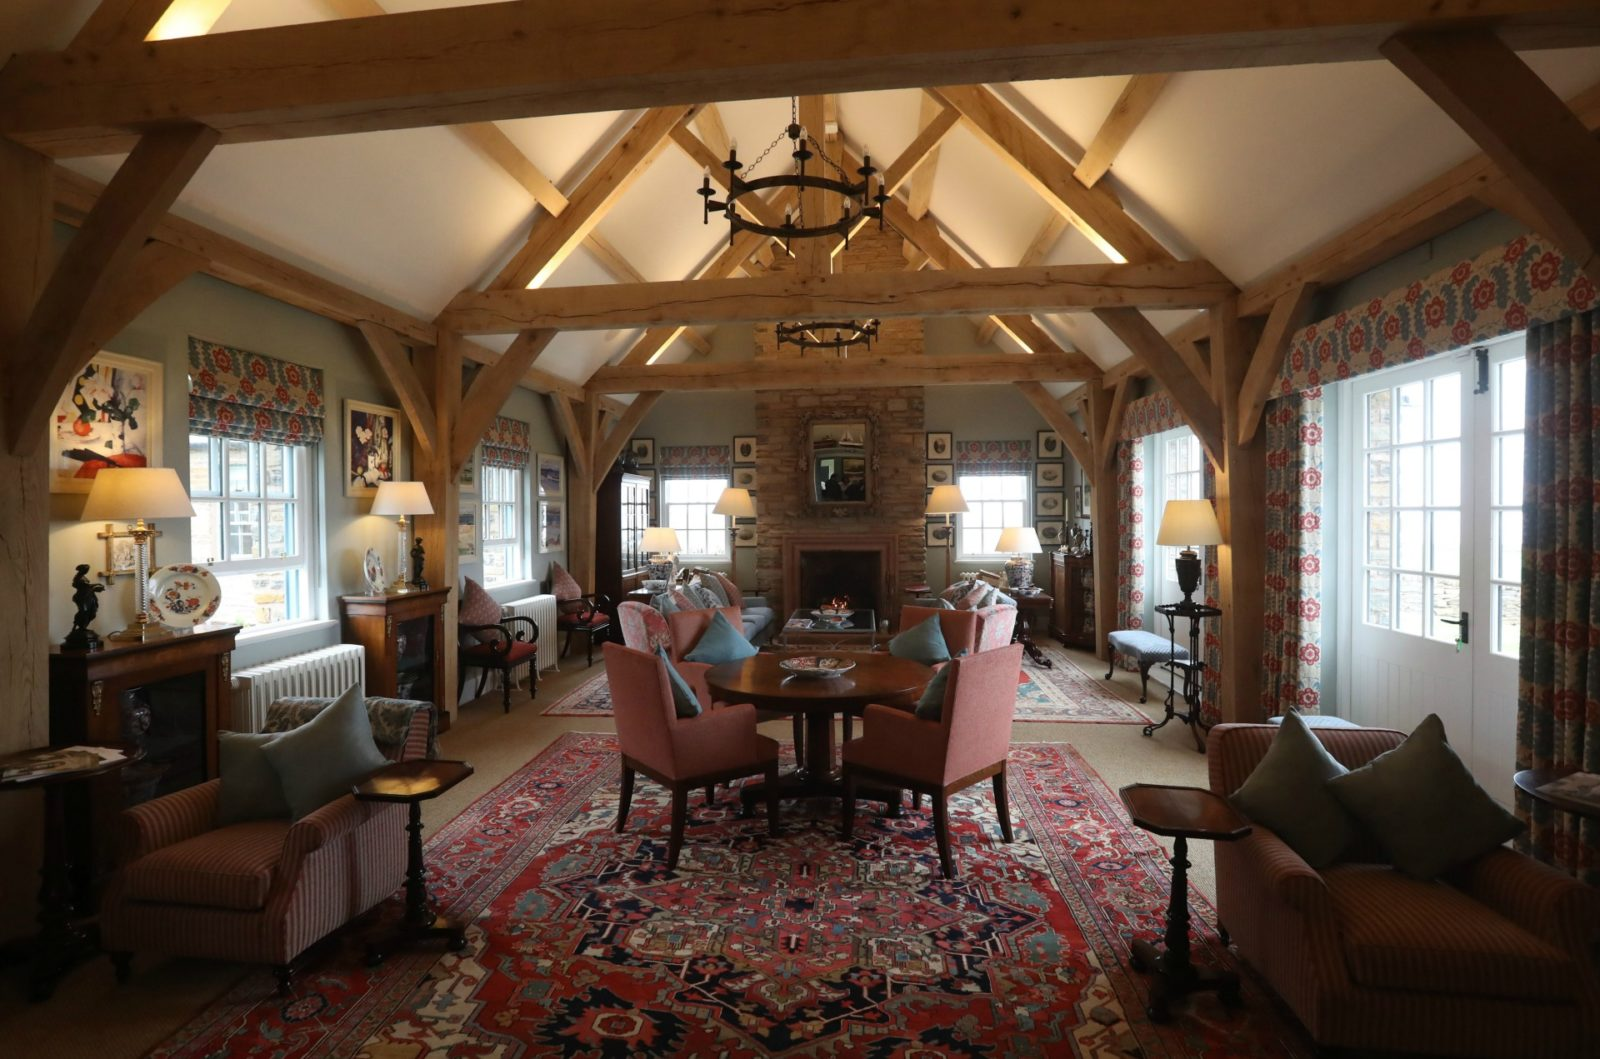 The drawing room located inside the Granary Lodge. Source: Getty